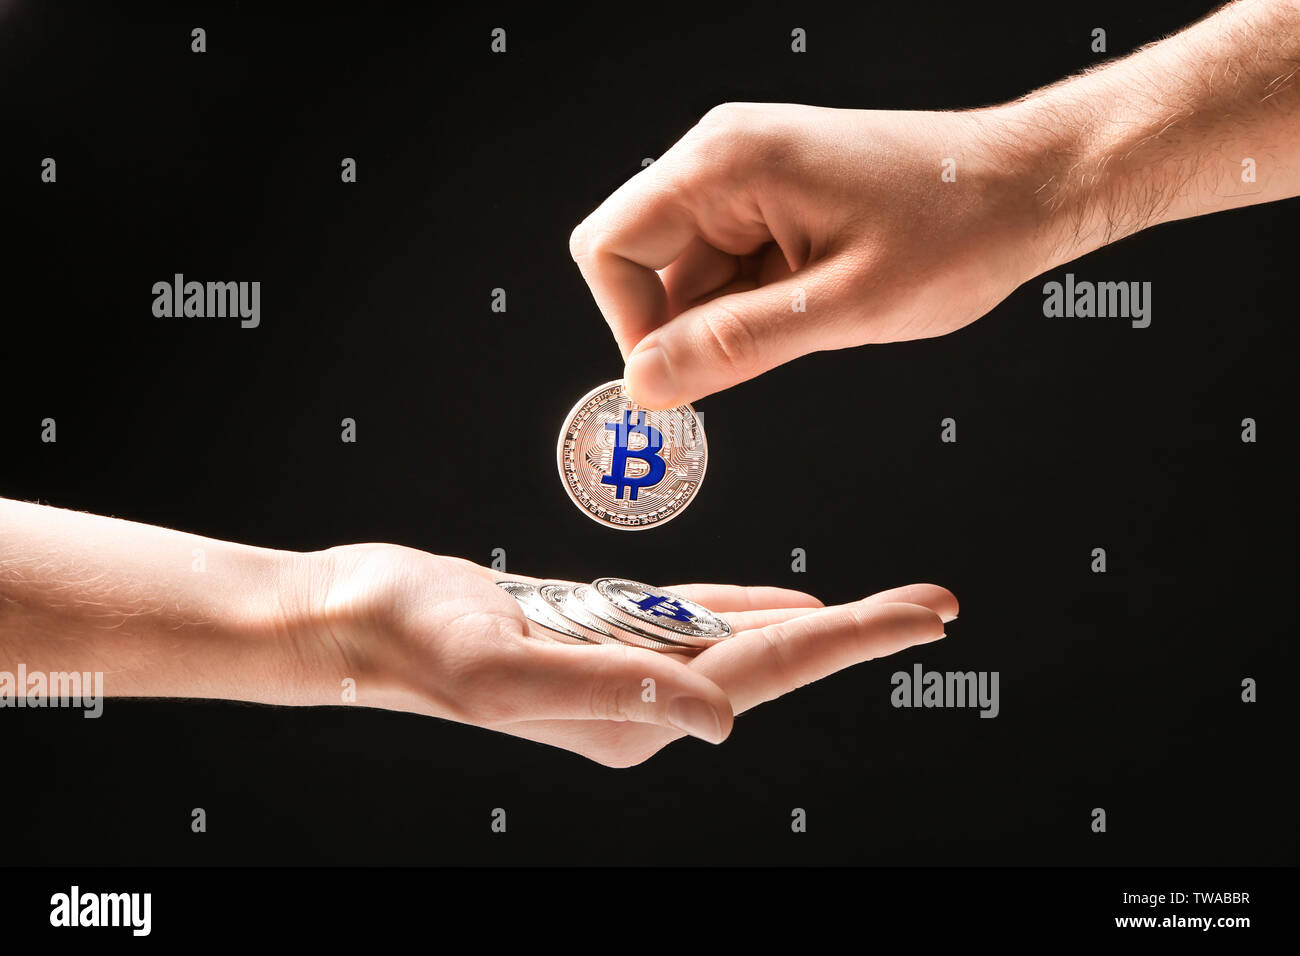 Man giving silver bitcoin to woman on black background - Stock Image